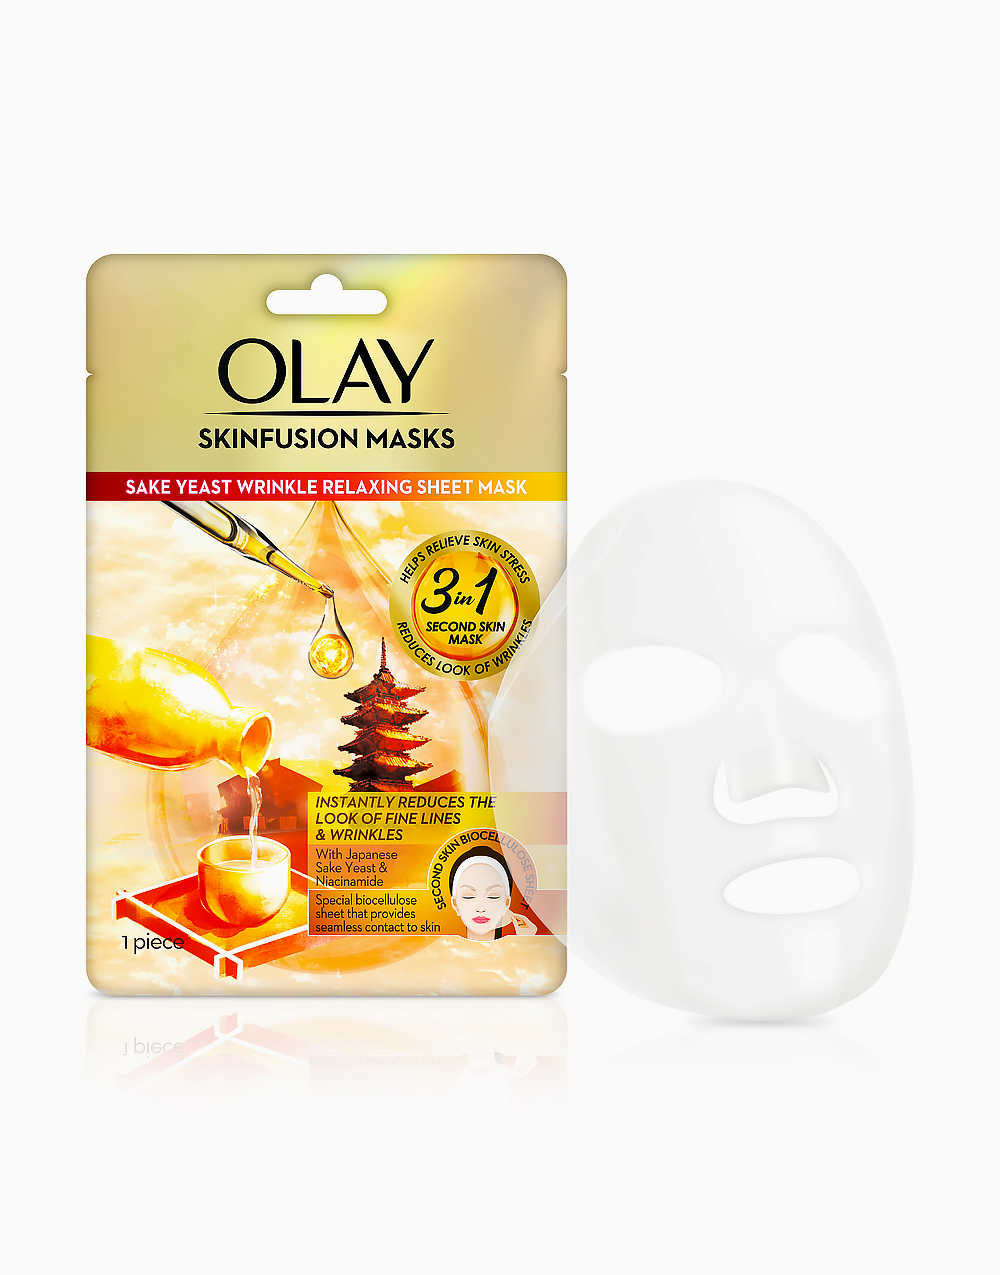 Olay Sake Yeast Wrinkle Relaxing Sheet Mask by Olay